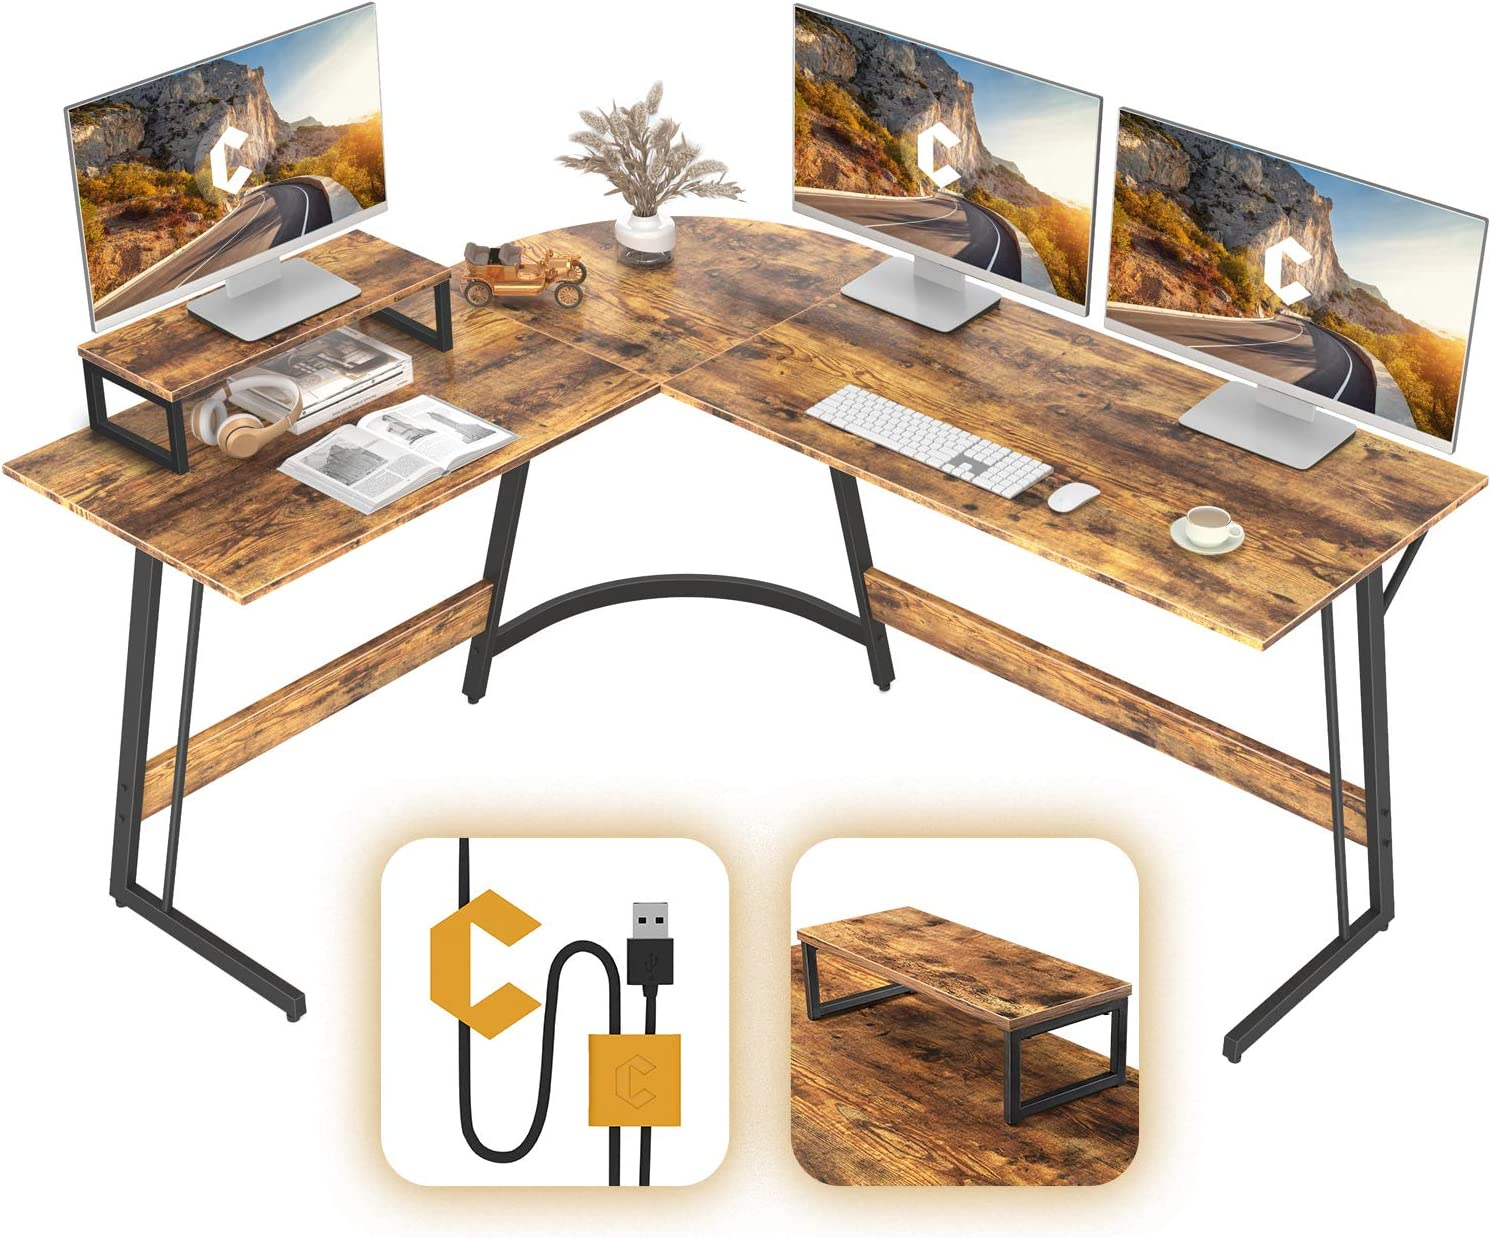 CubiCubi Modern L-Shaped Desk Computer Corner Desk, Home Office Writing Study Workstation with Small Table, Space Saving, Easy to Assemble, Rustic Brown